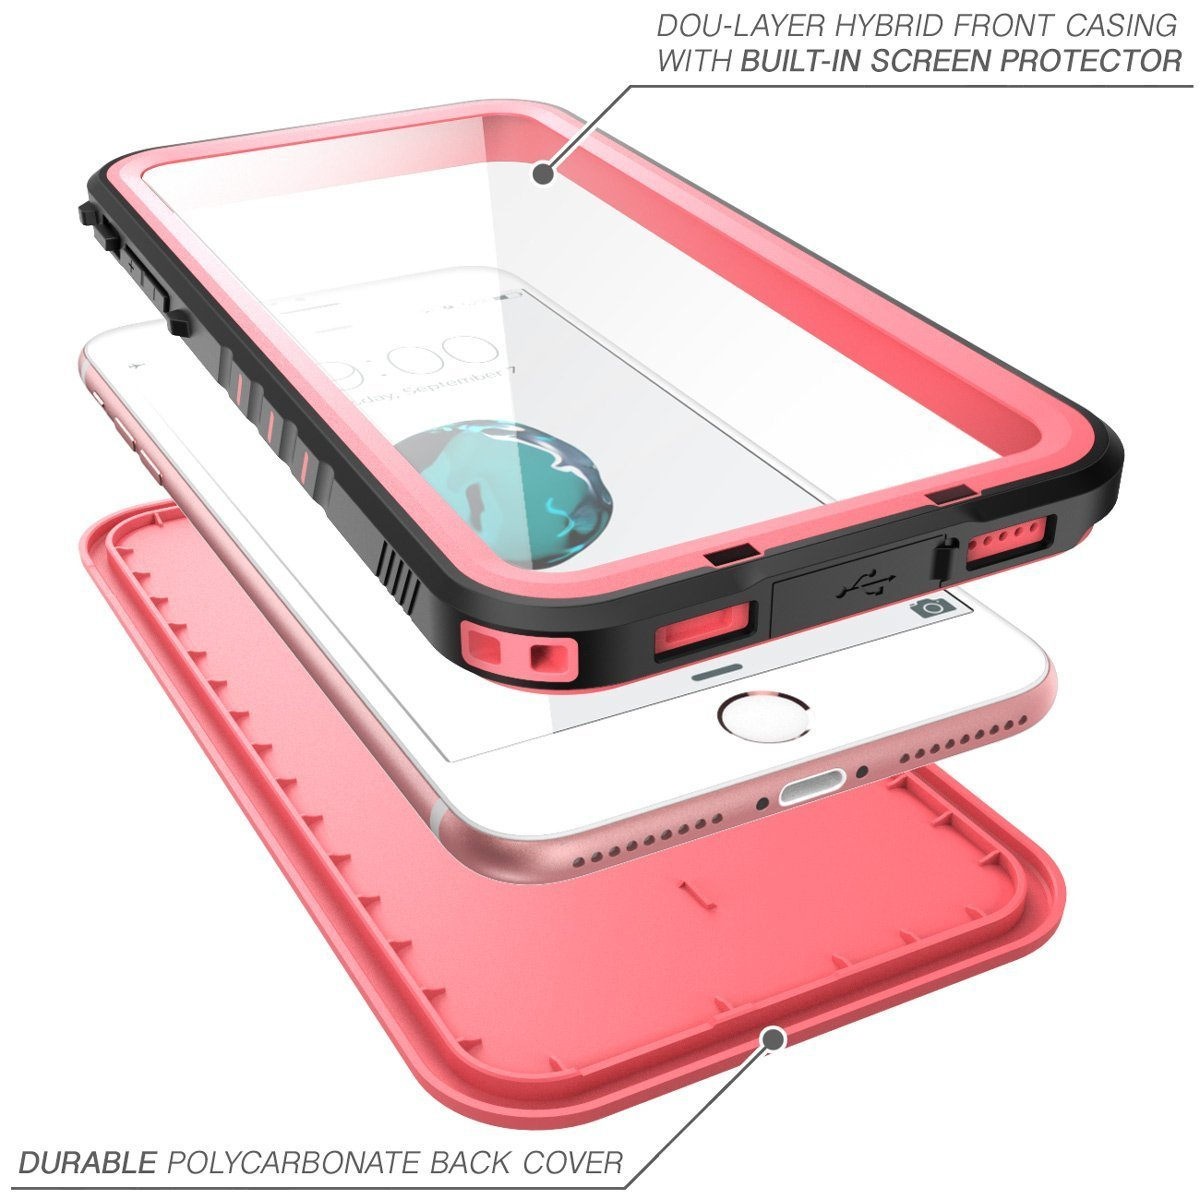 iPhone 7 Plus Case, NexCase Waterproof Full-body Rugged Case with Built-in Screen Protector for Apple iPhone 7 Plus 5.5 inch 2016 Release (Pink) by NexCase (Image #3)